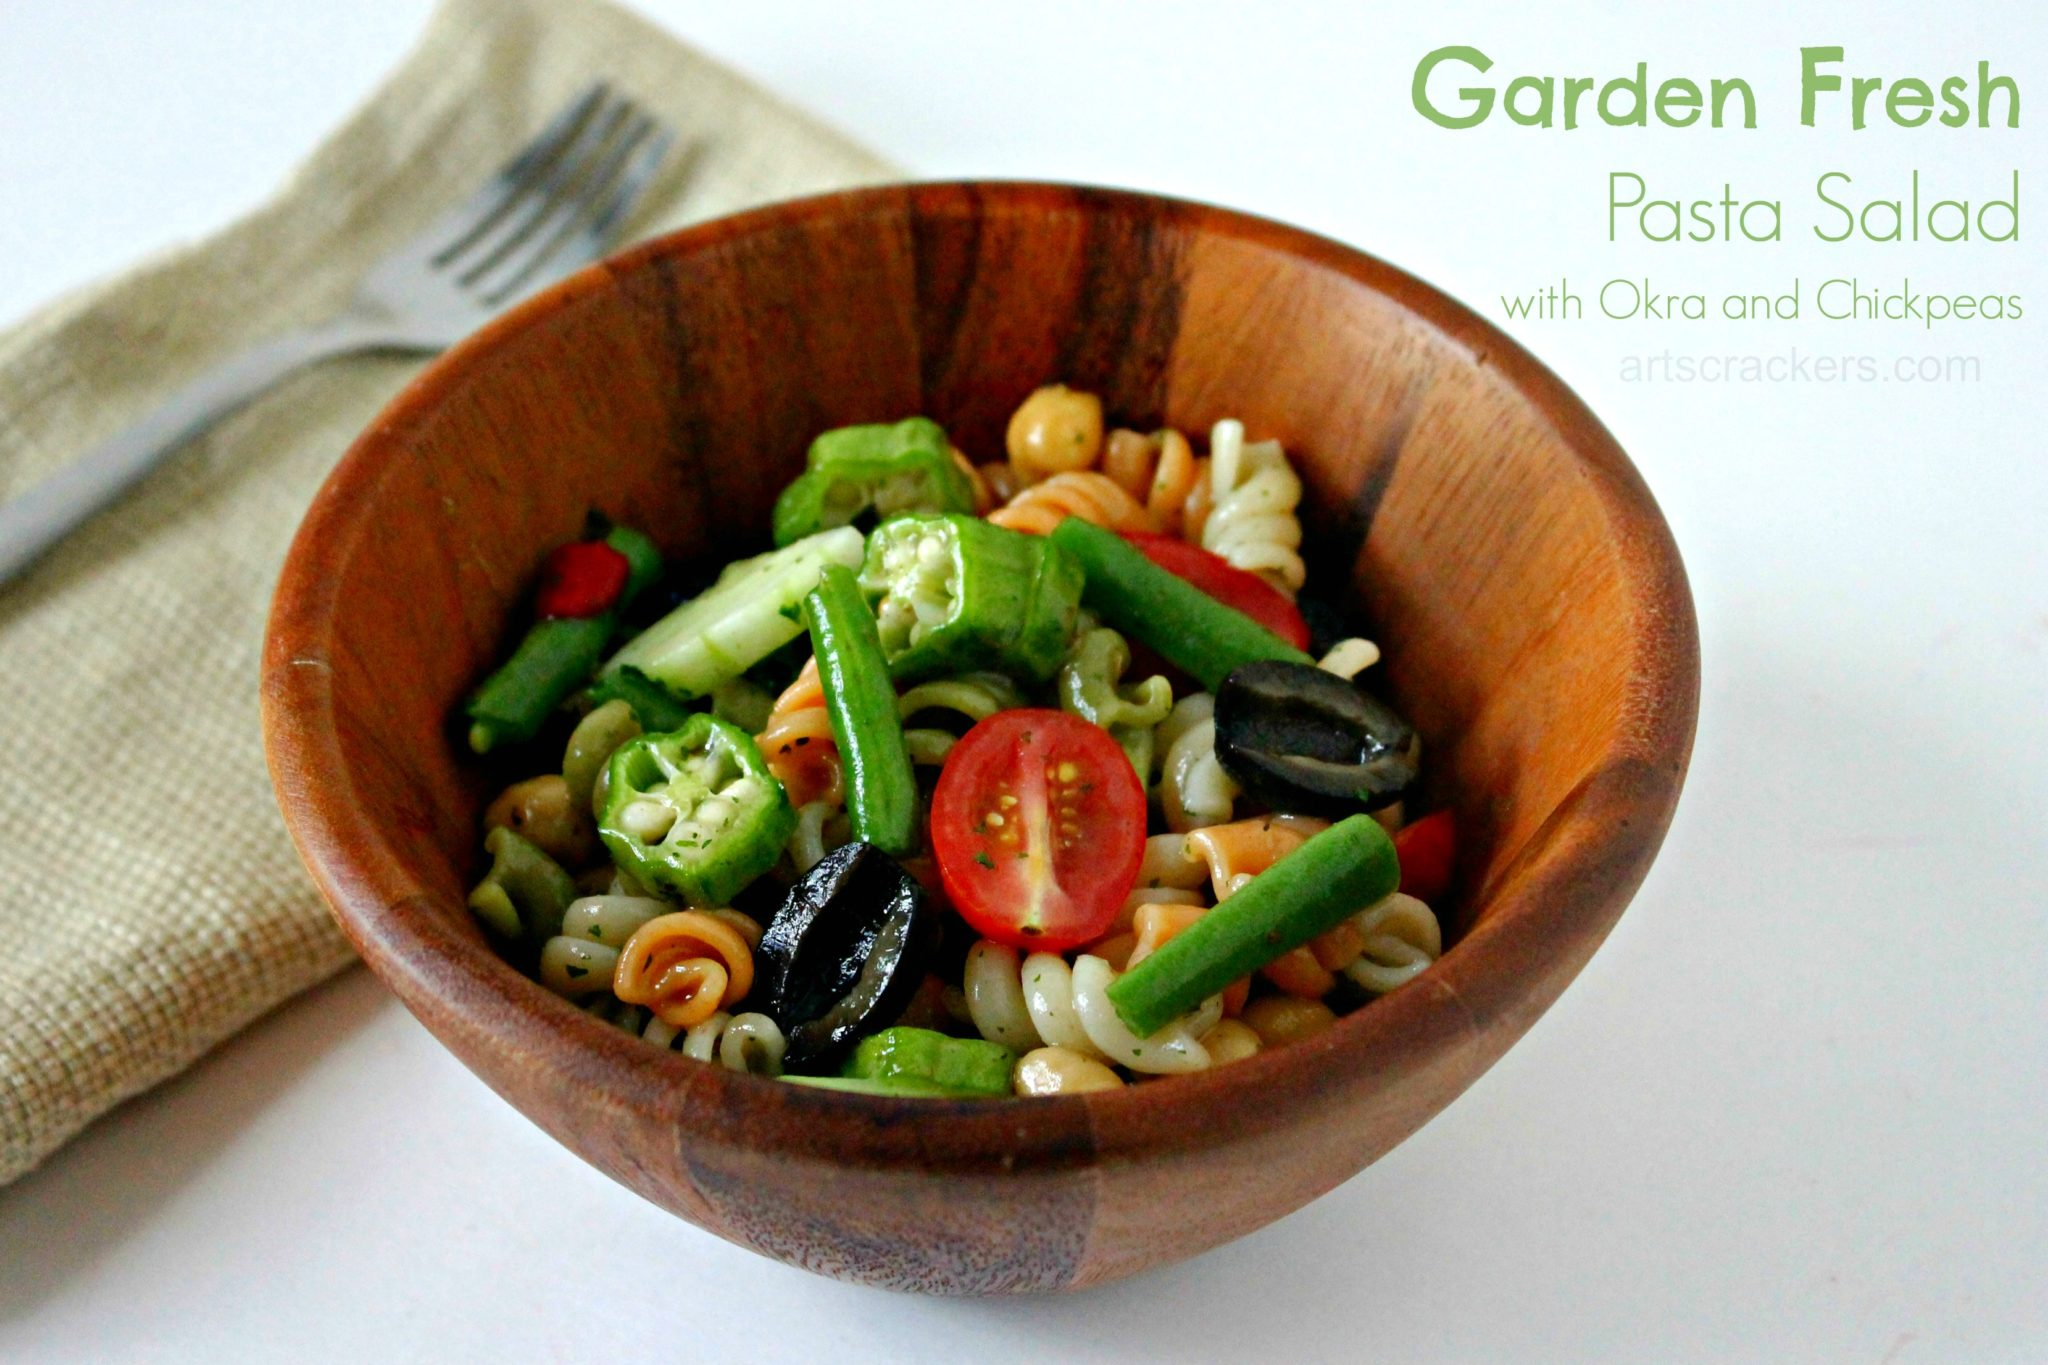 Garden Fresh Pasta Salad. Click the picture for the recipe.